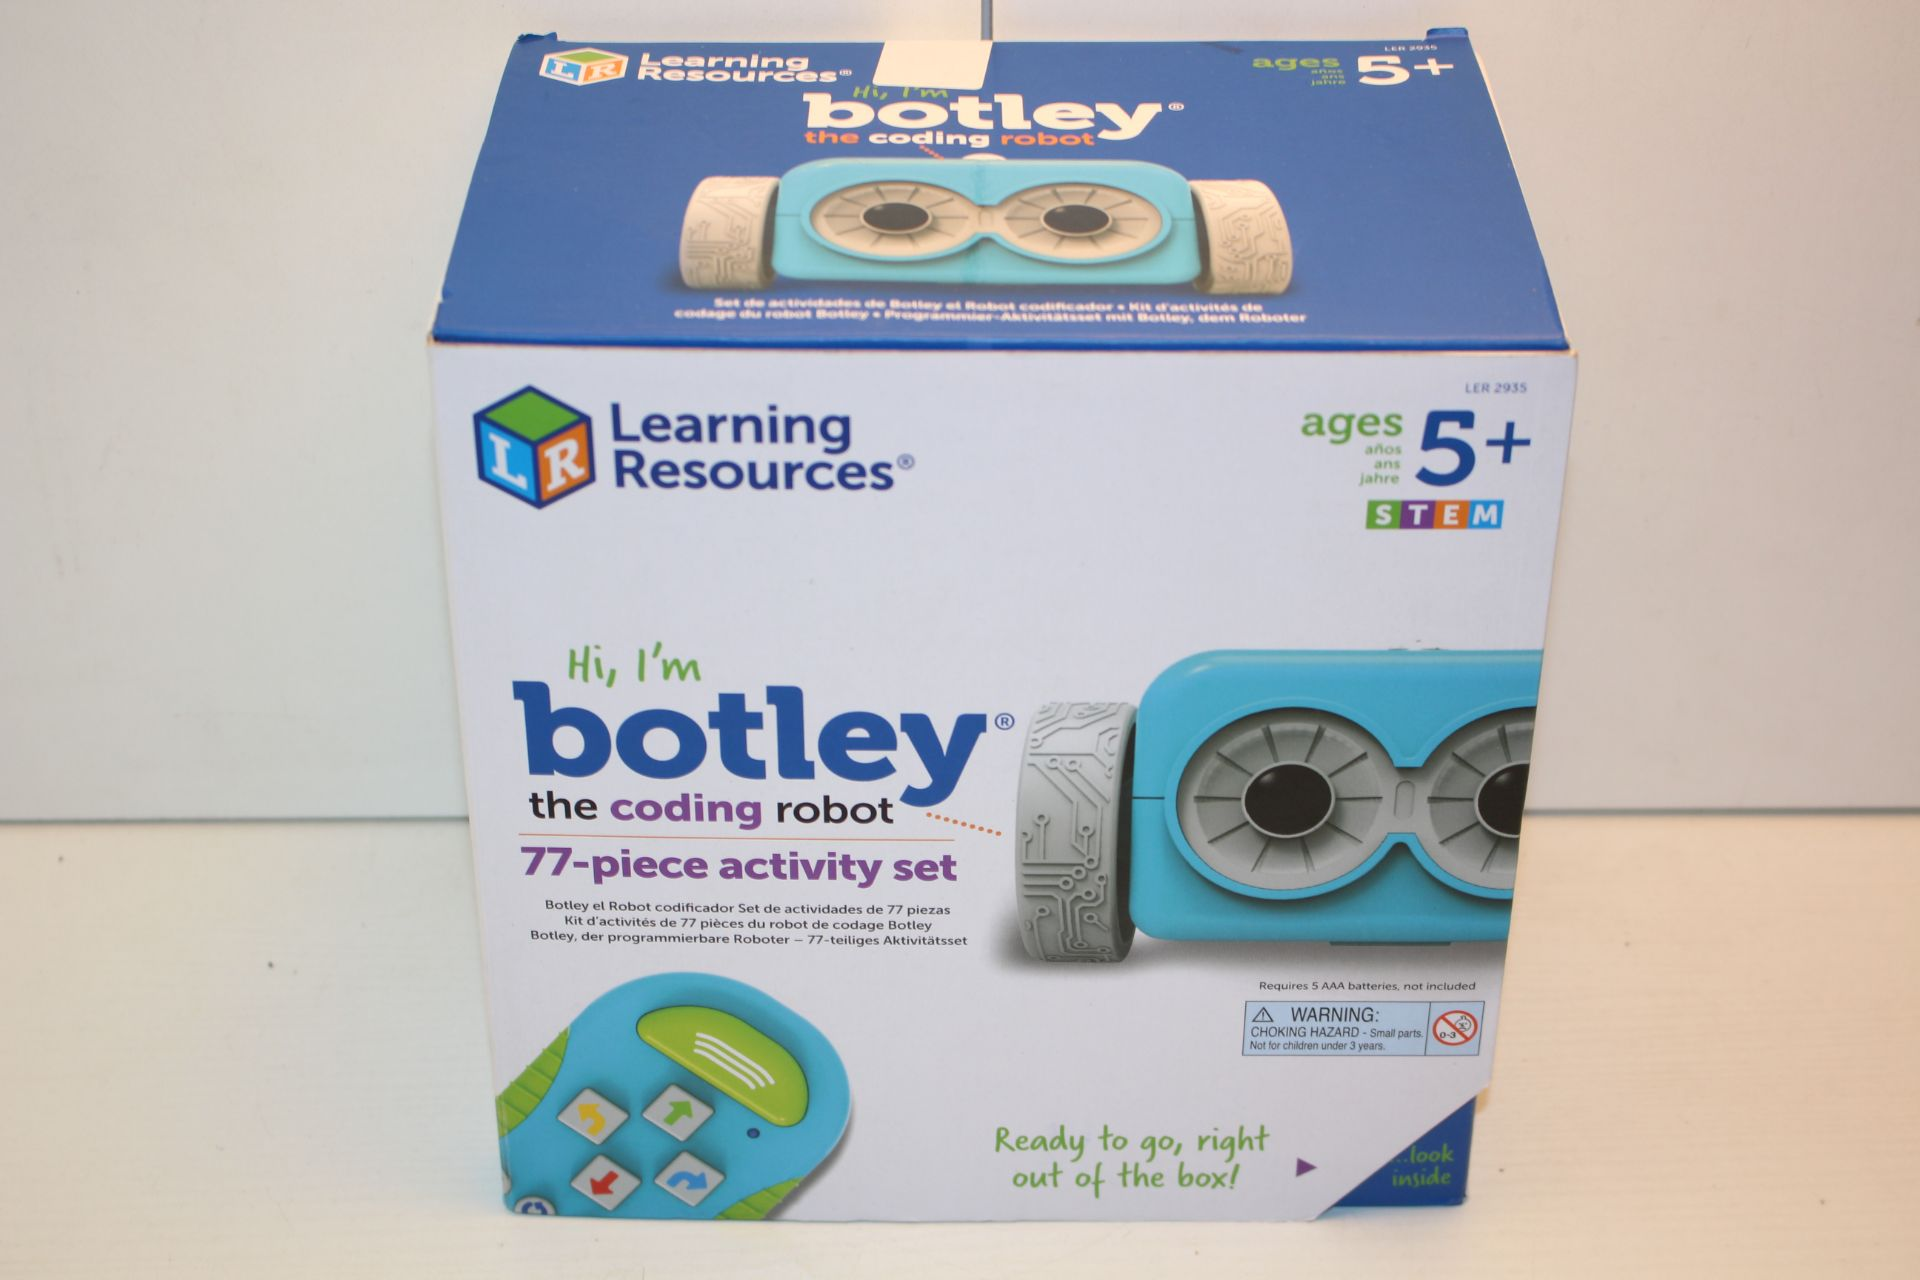 BOXED LEARNING RESOURCES BOTLEY THE CODING ROBOT 77-PIECE ACTIVITY SET RRP £77.99Condition